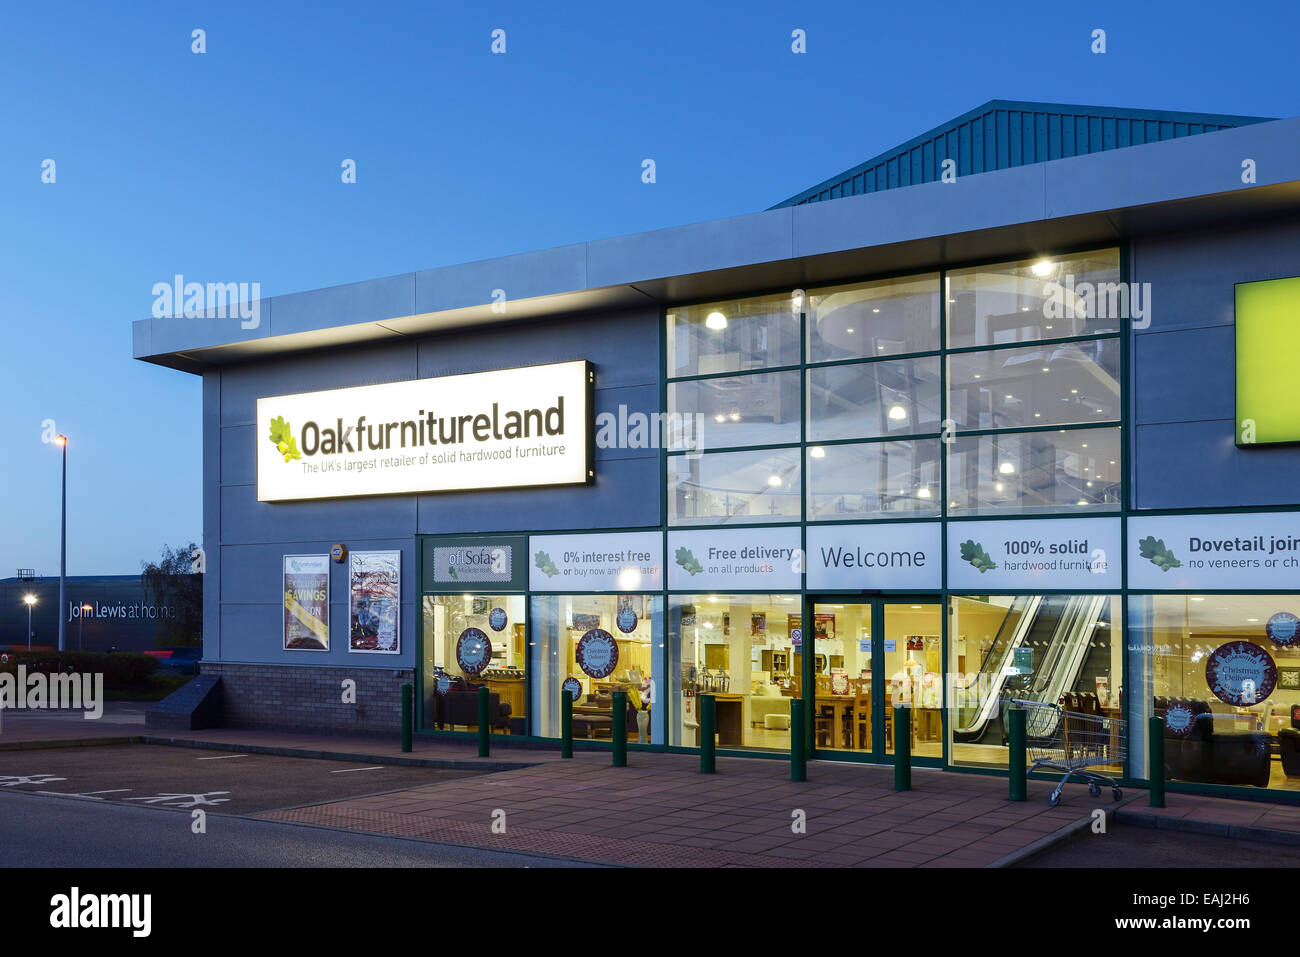 Oak Furniture Land Beds Furniture Shop Stock Photos Furniture Shop Stock Images Alamy